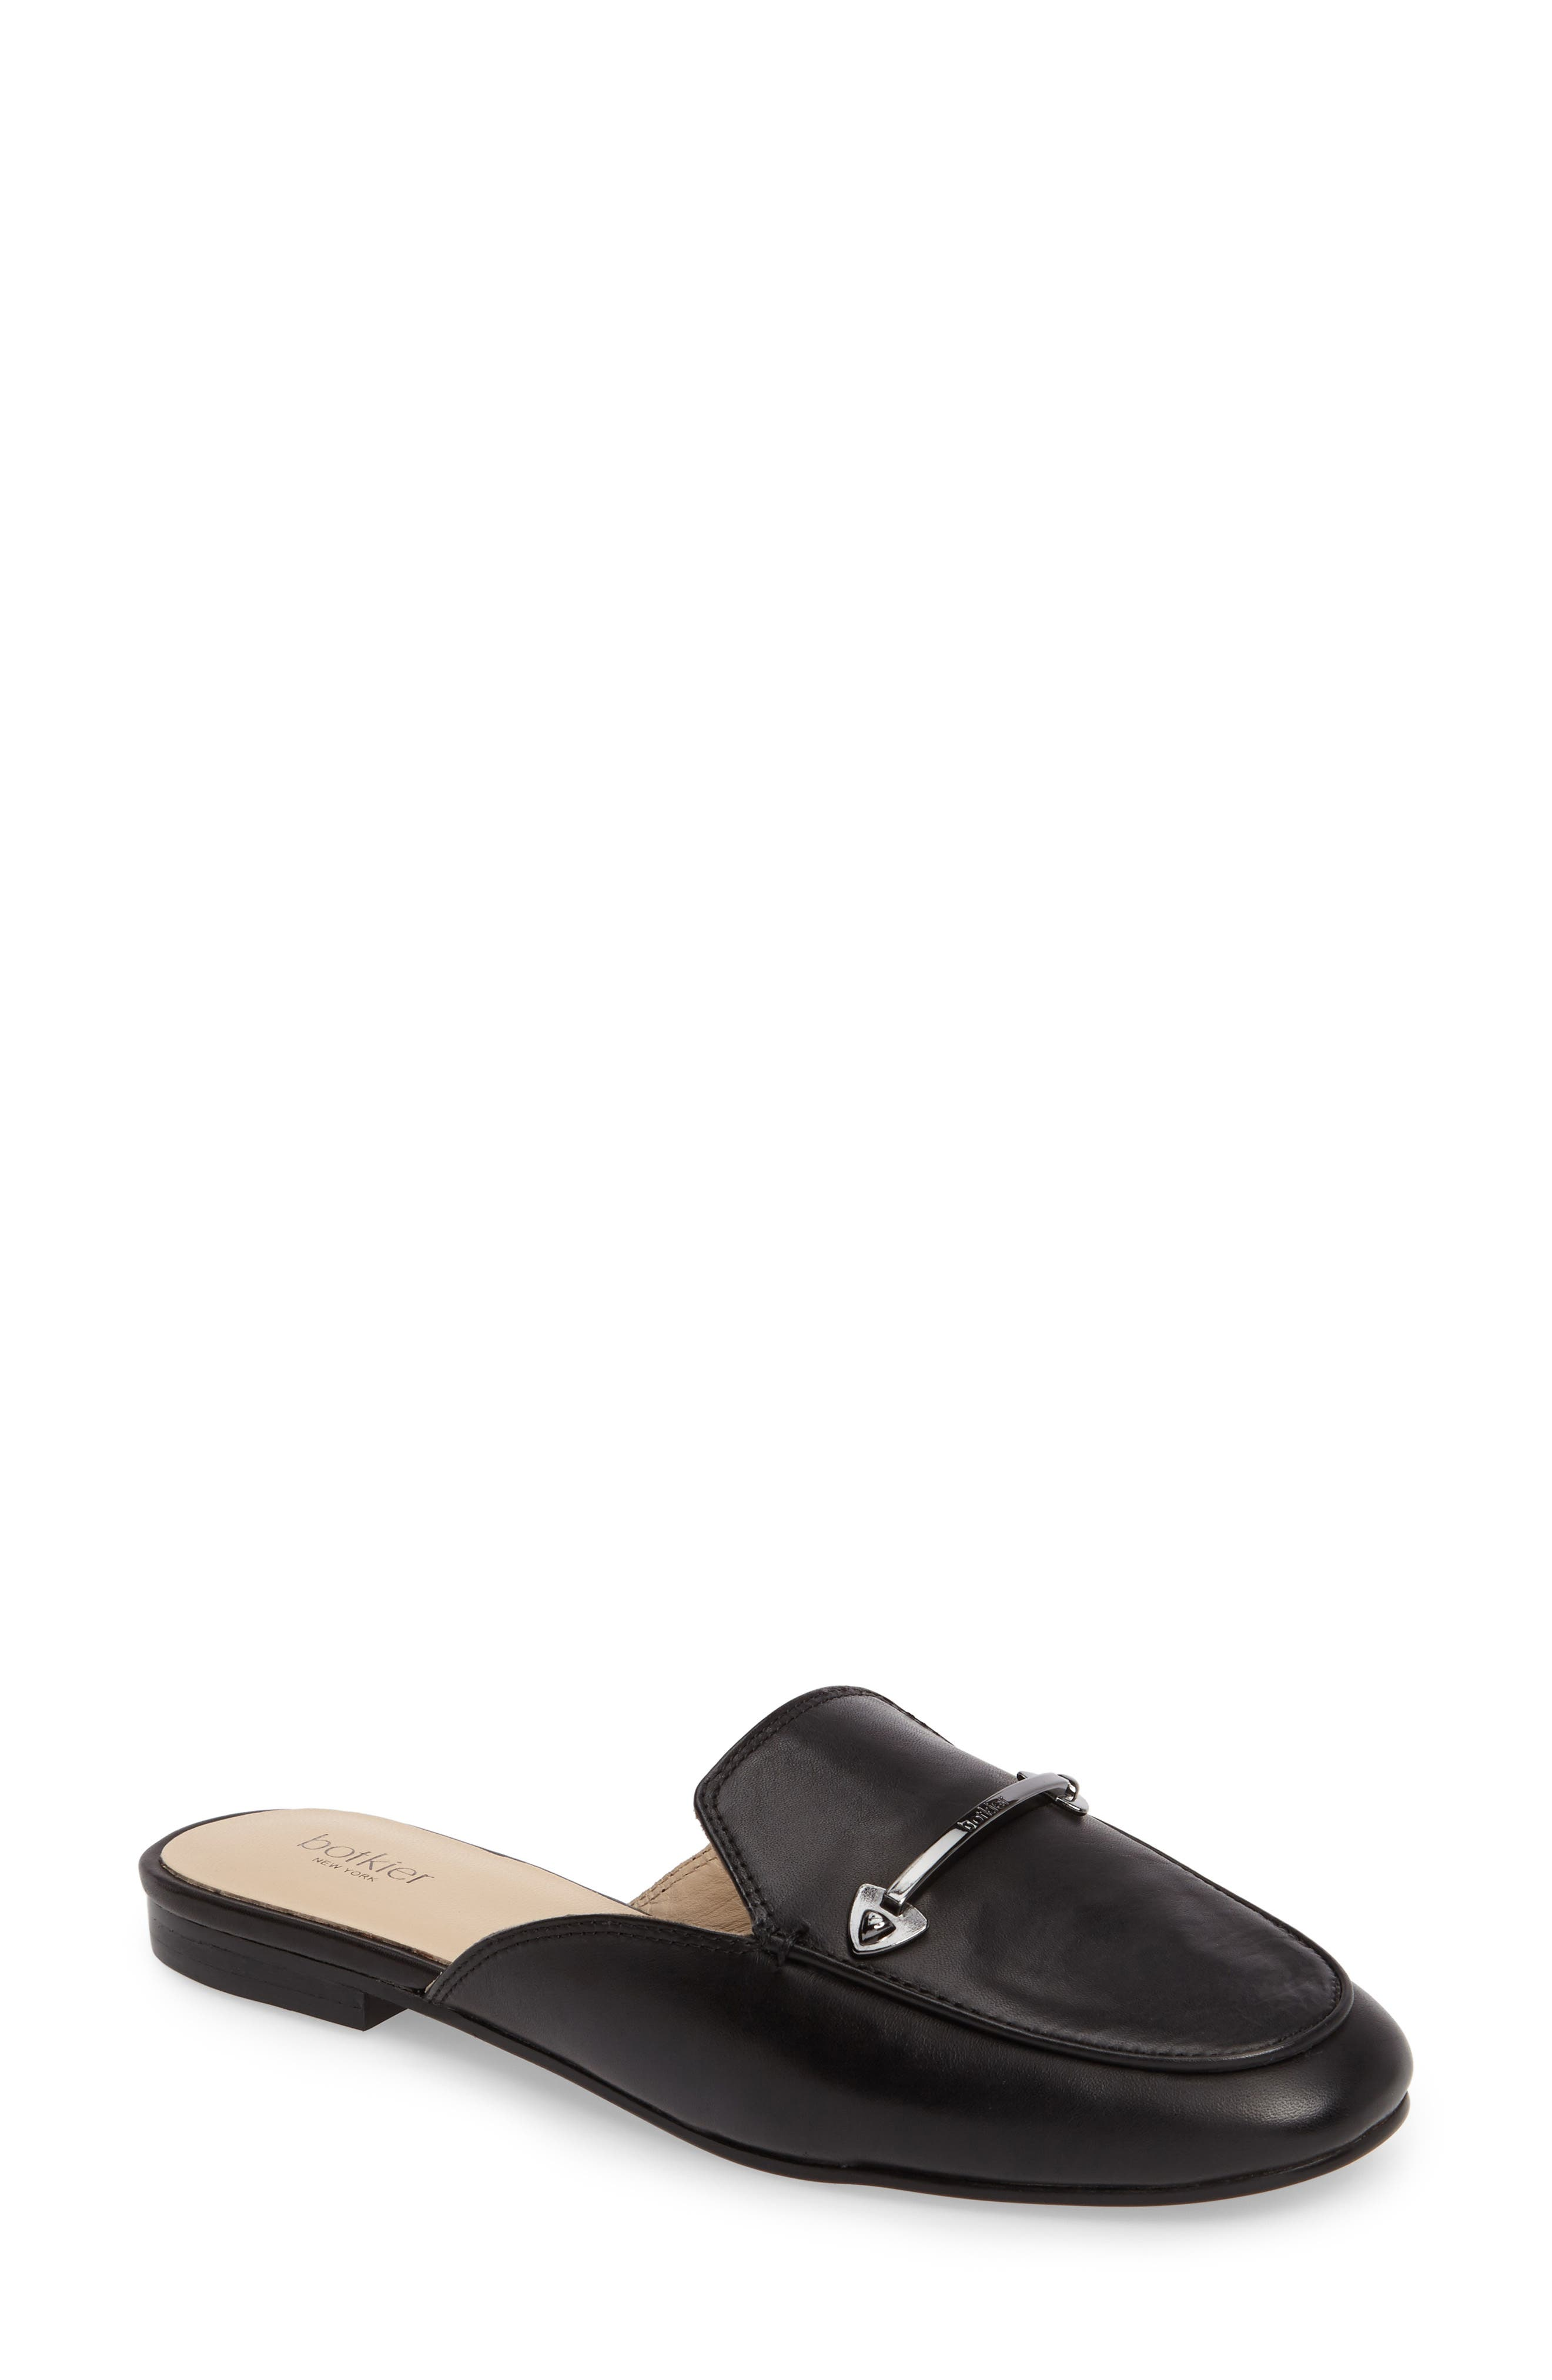 Botkier  CLARE LOAFER MULE